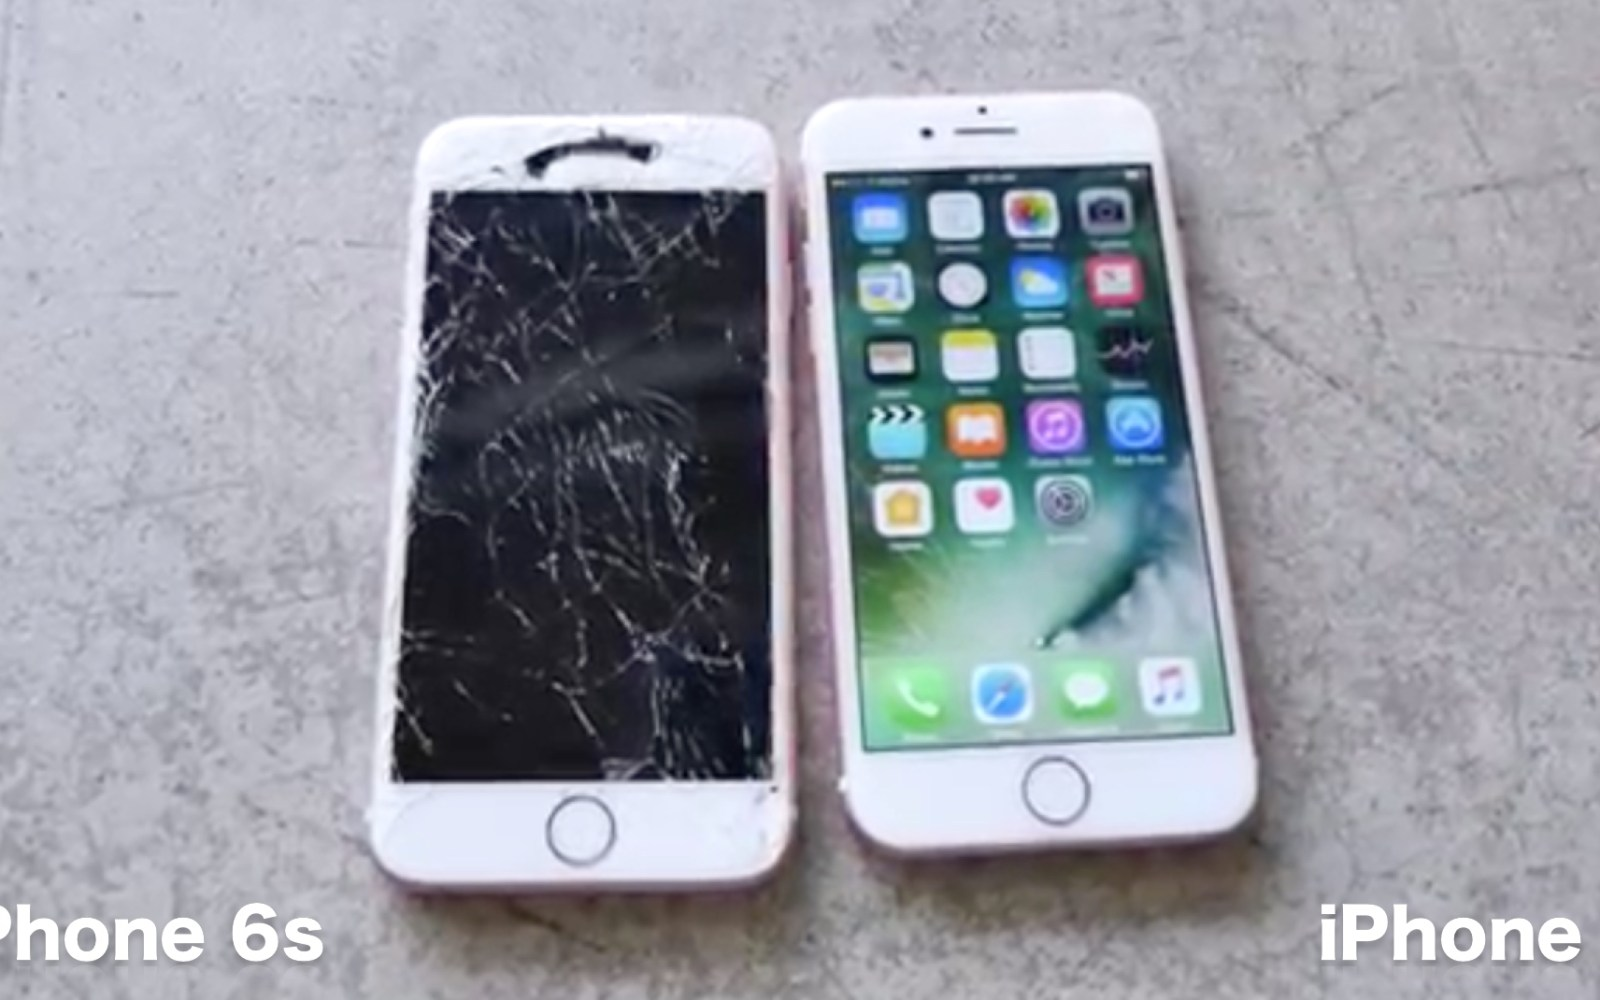 iPhone 7 bests iPhone 6s in durability drop test, survives ten foot face-down drop